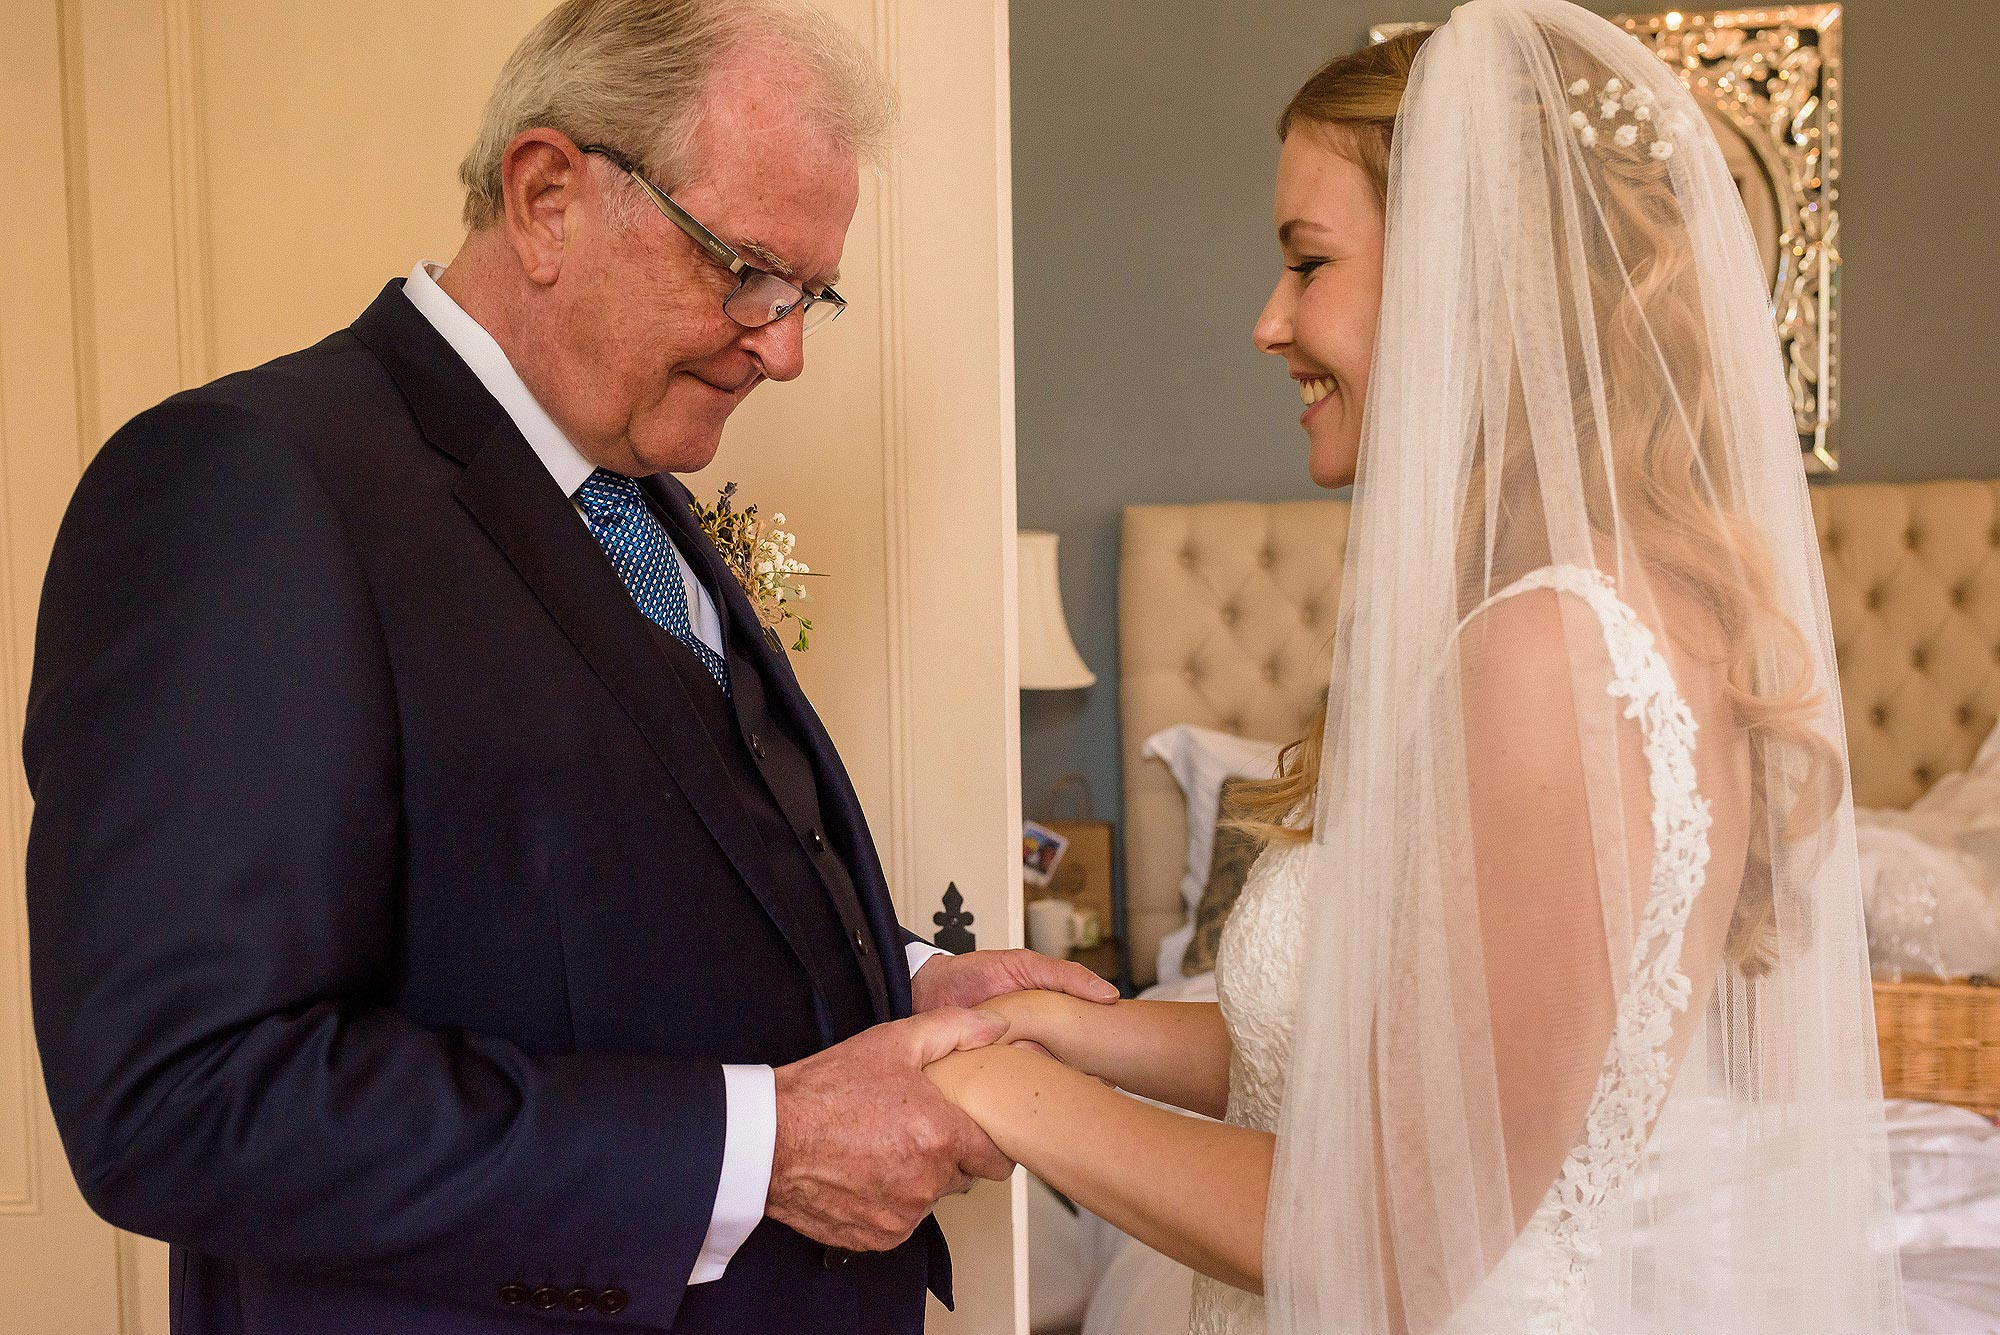 emotional moment between dad and bride before wedding